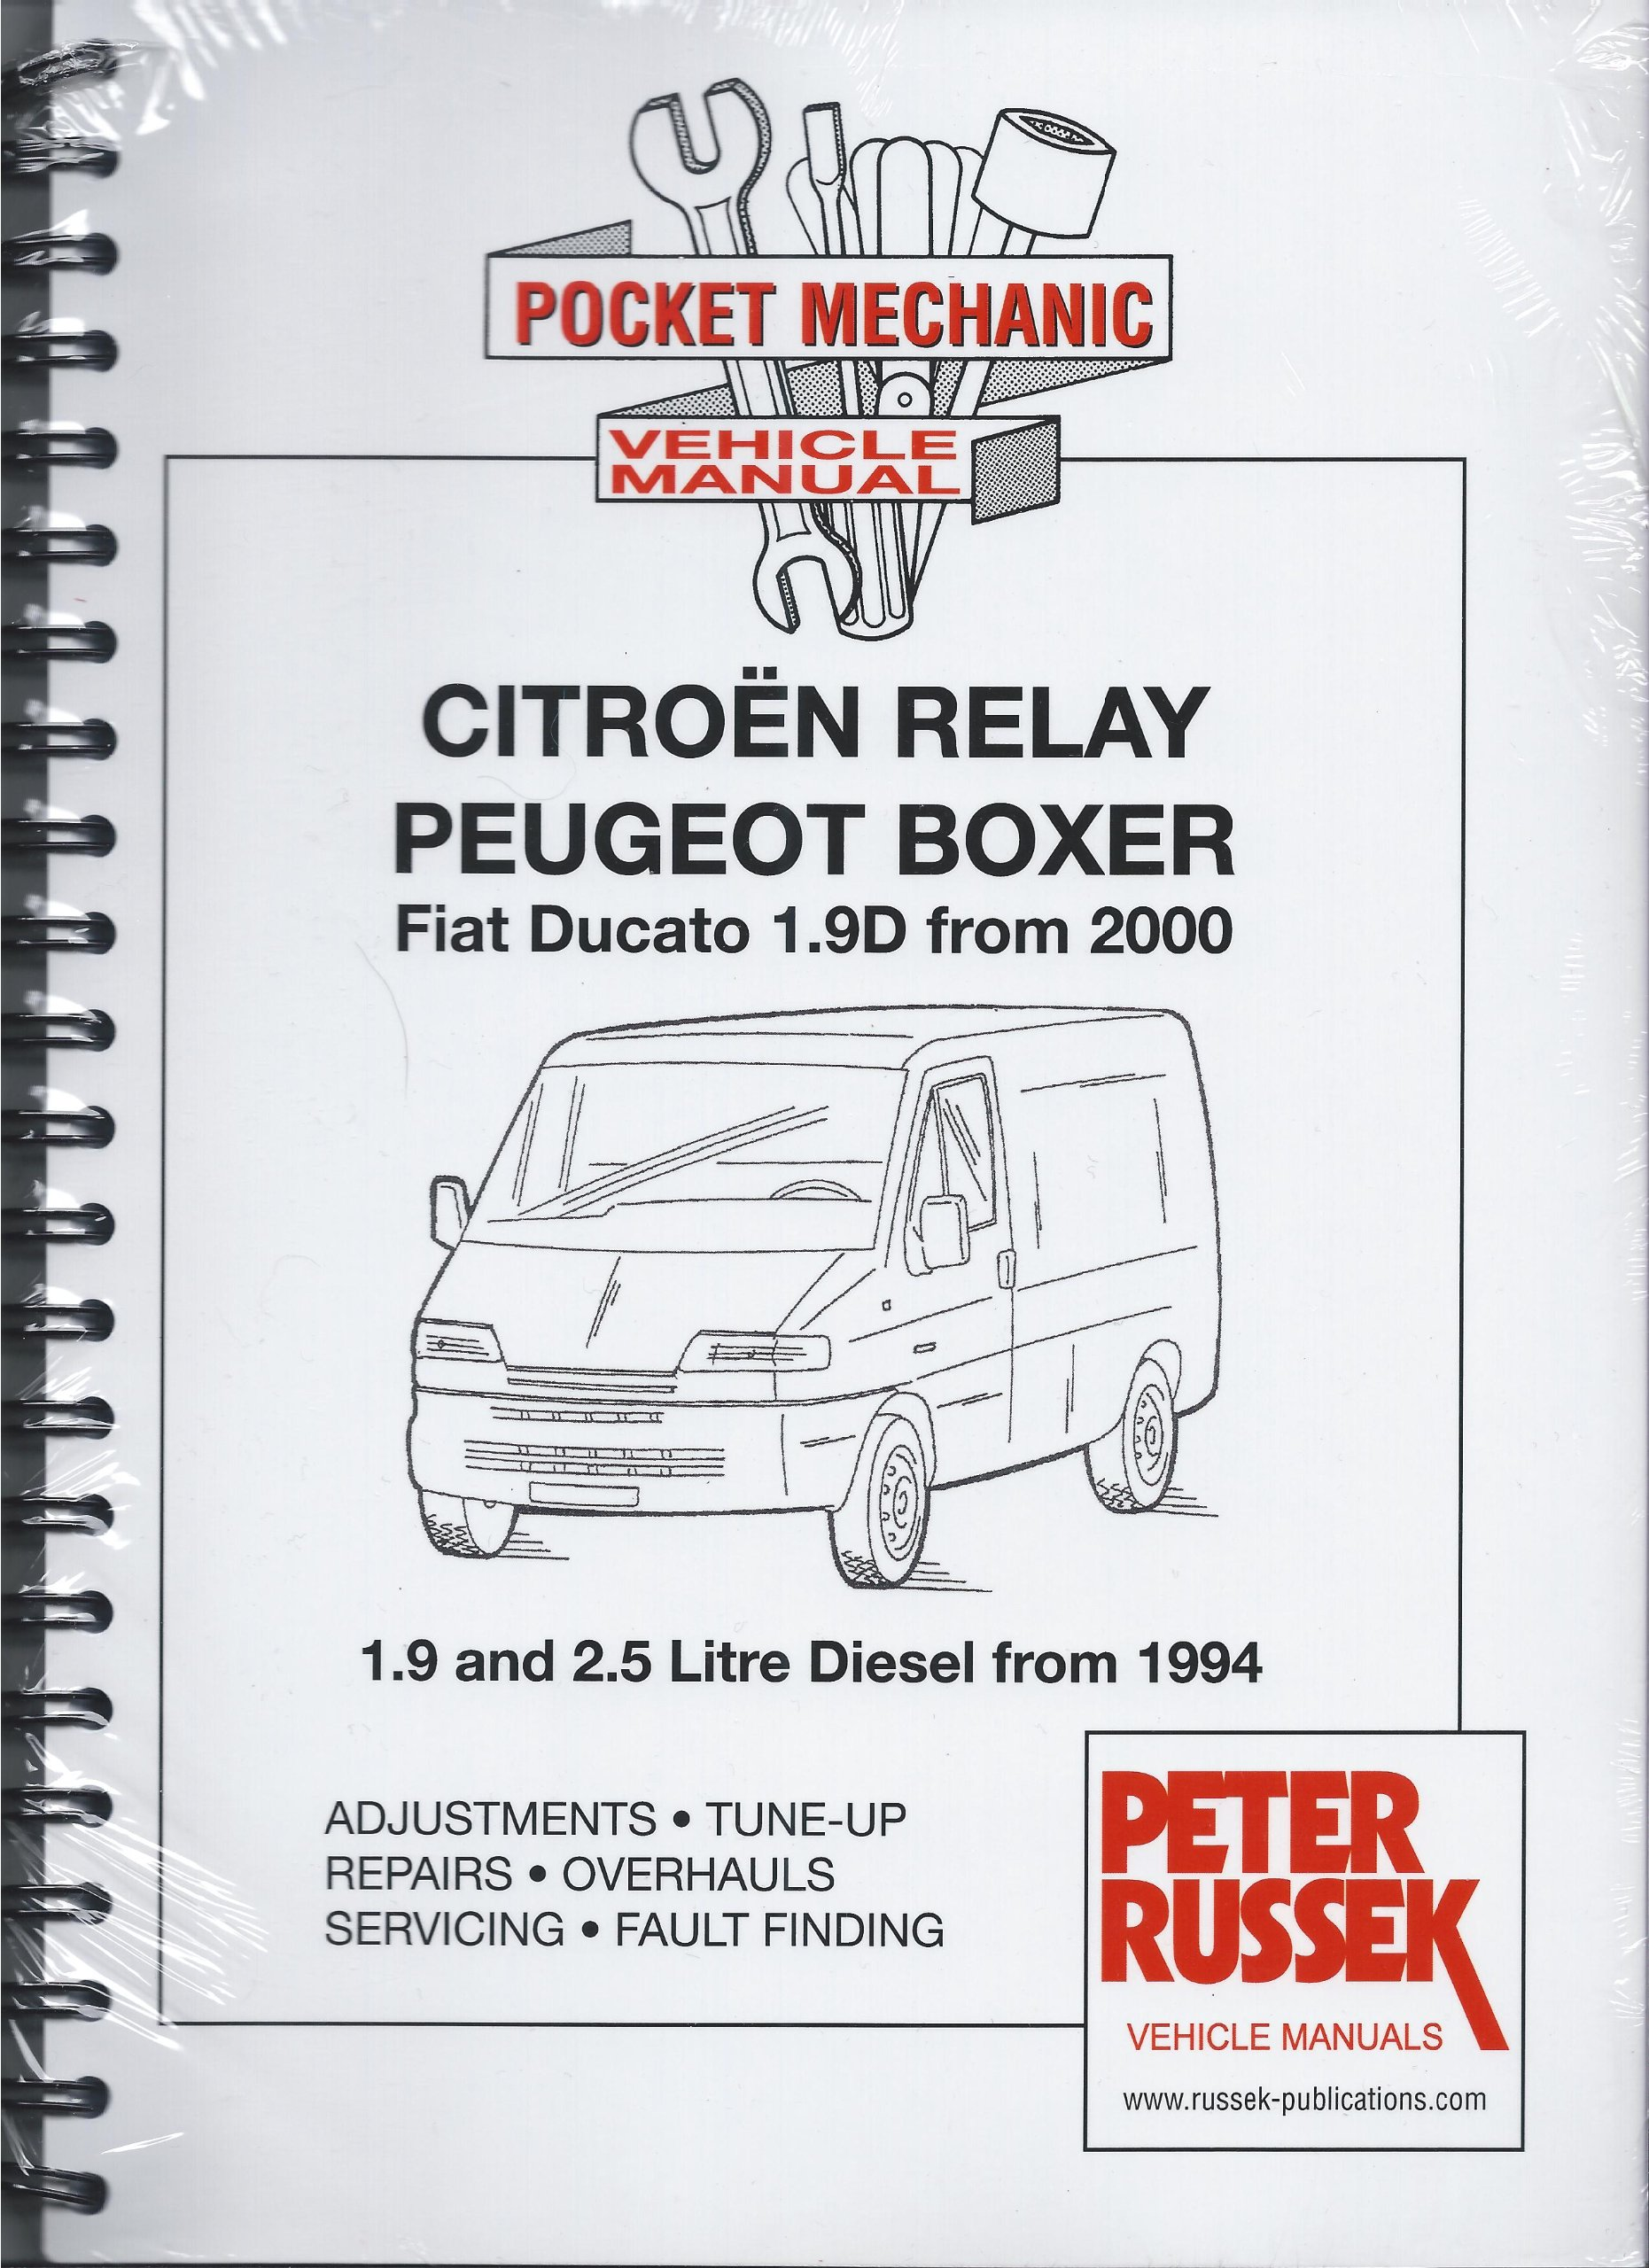 91ODzBCZeZL citroen relay, peugeot boxer 1 9 2 5 diesel from '94, fiat ducato peugeot boxer wiring diagram download at crackthecode.co